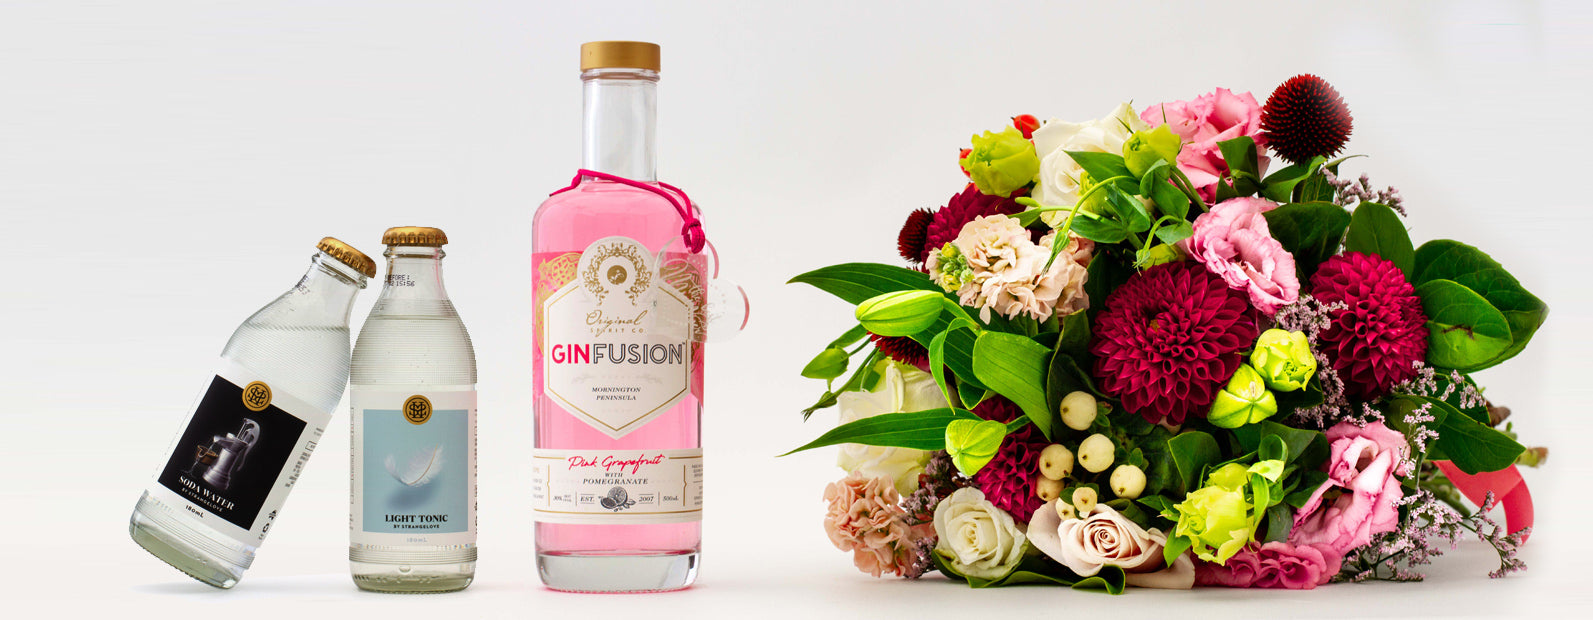 FREE HEART KEEPSAKE WITH EVERY BOTTLE OF PINK GRAPEFRUIT GINFUSINO